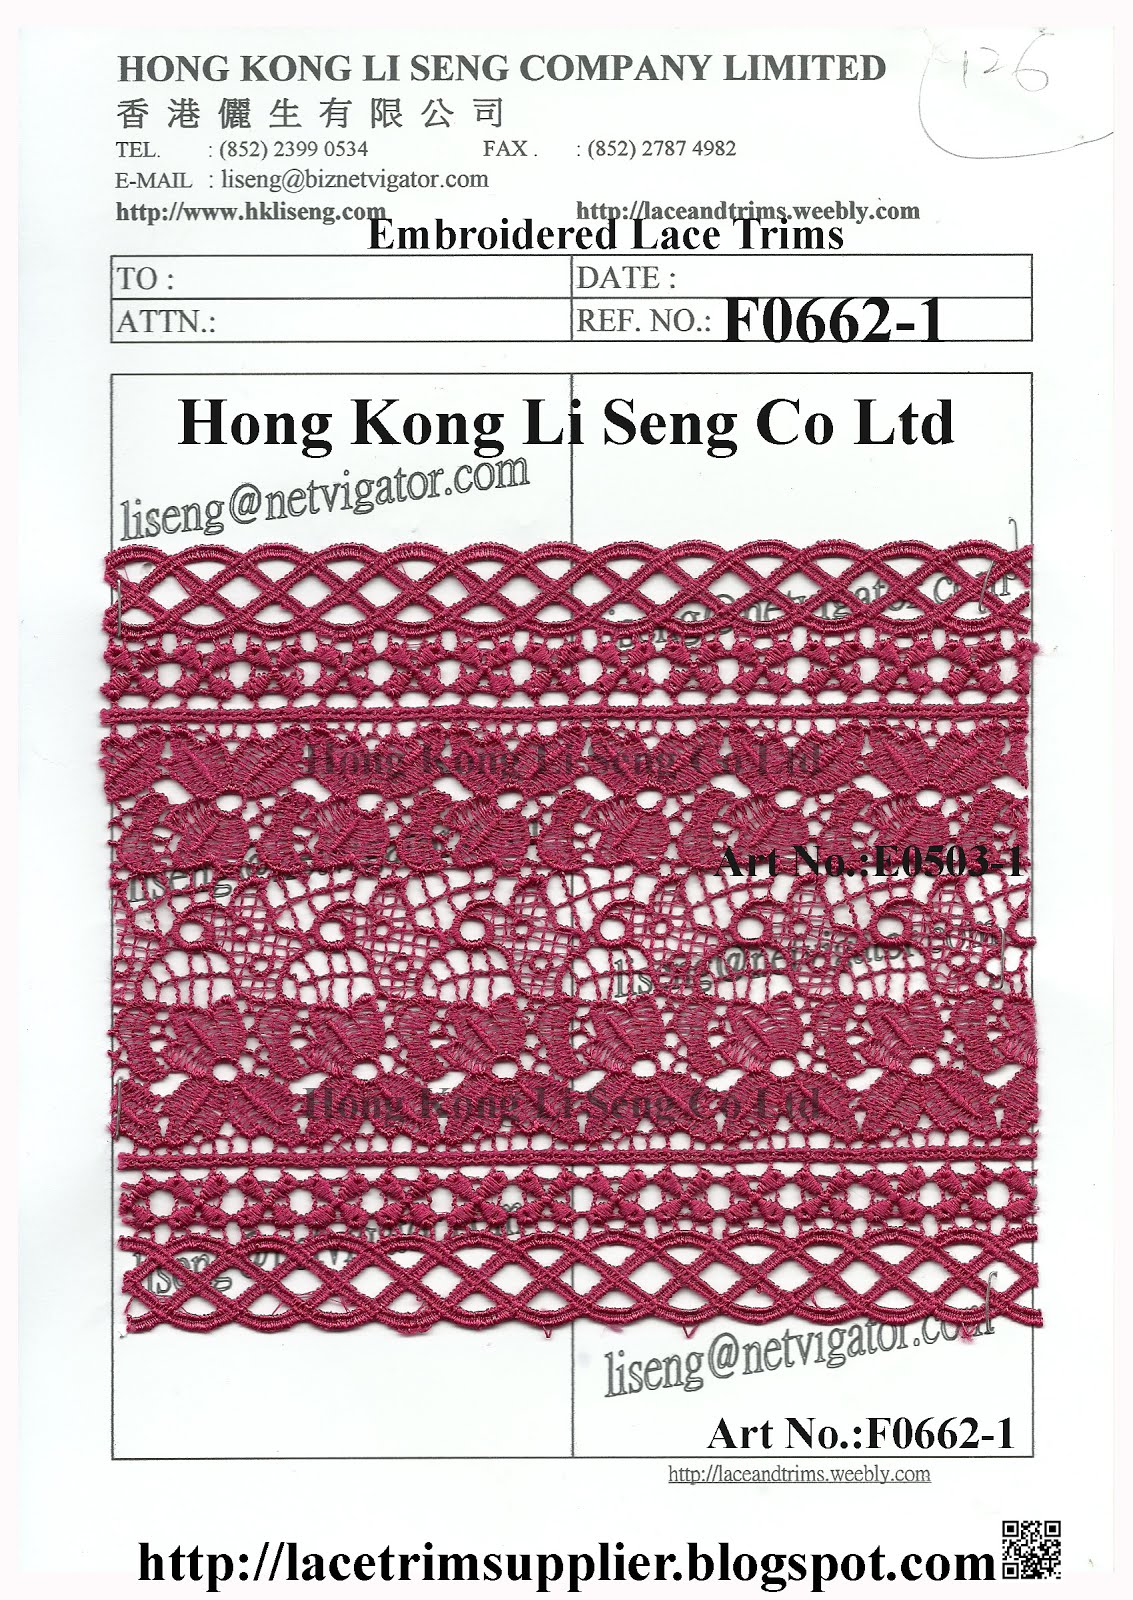 A. Stock Lot Lace Trims Supplier: Hong Kong Li Seng Co Ltd